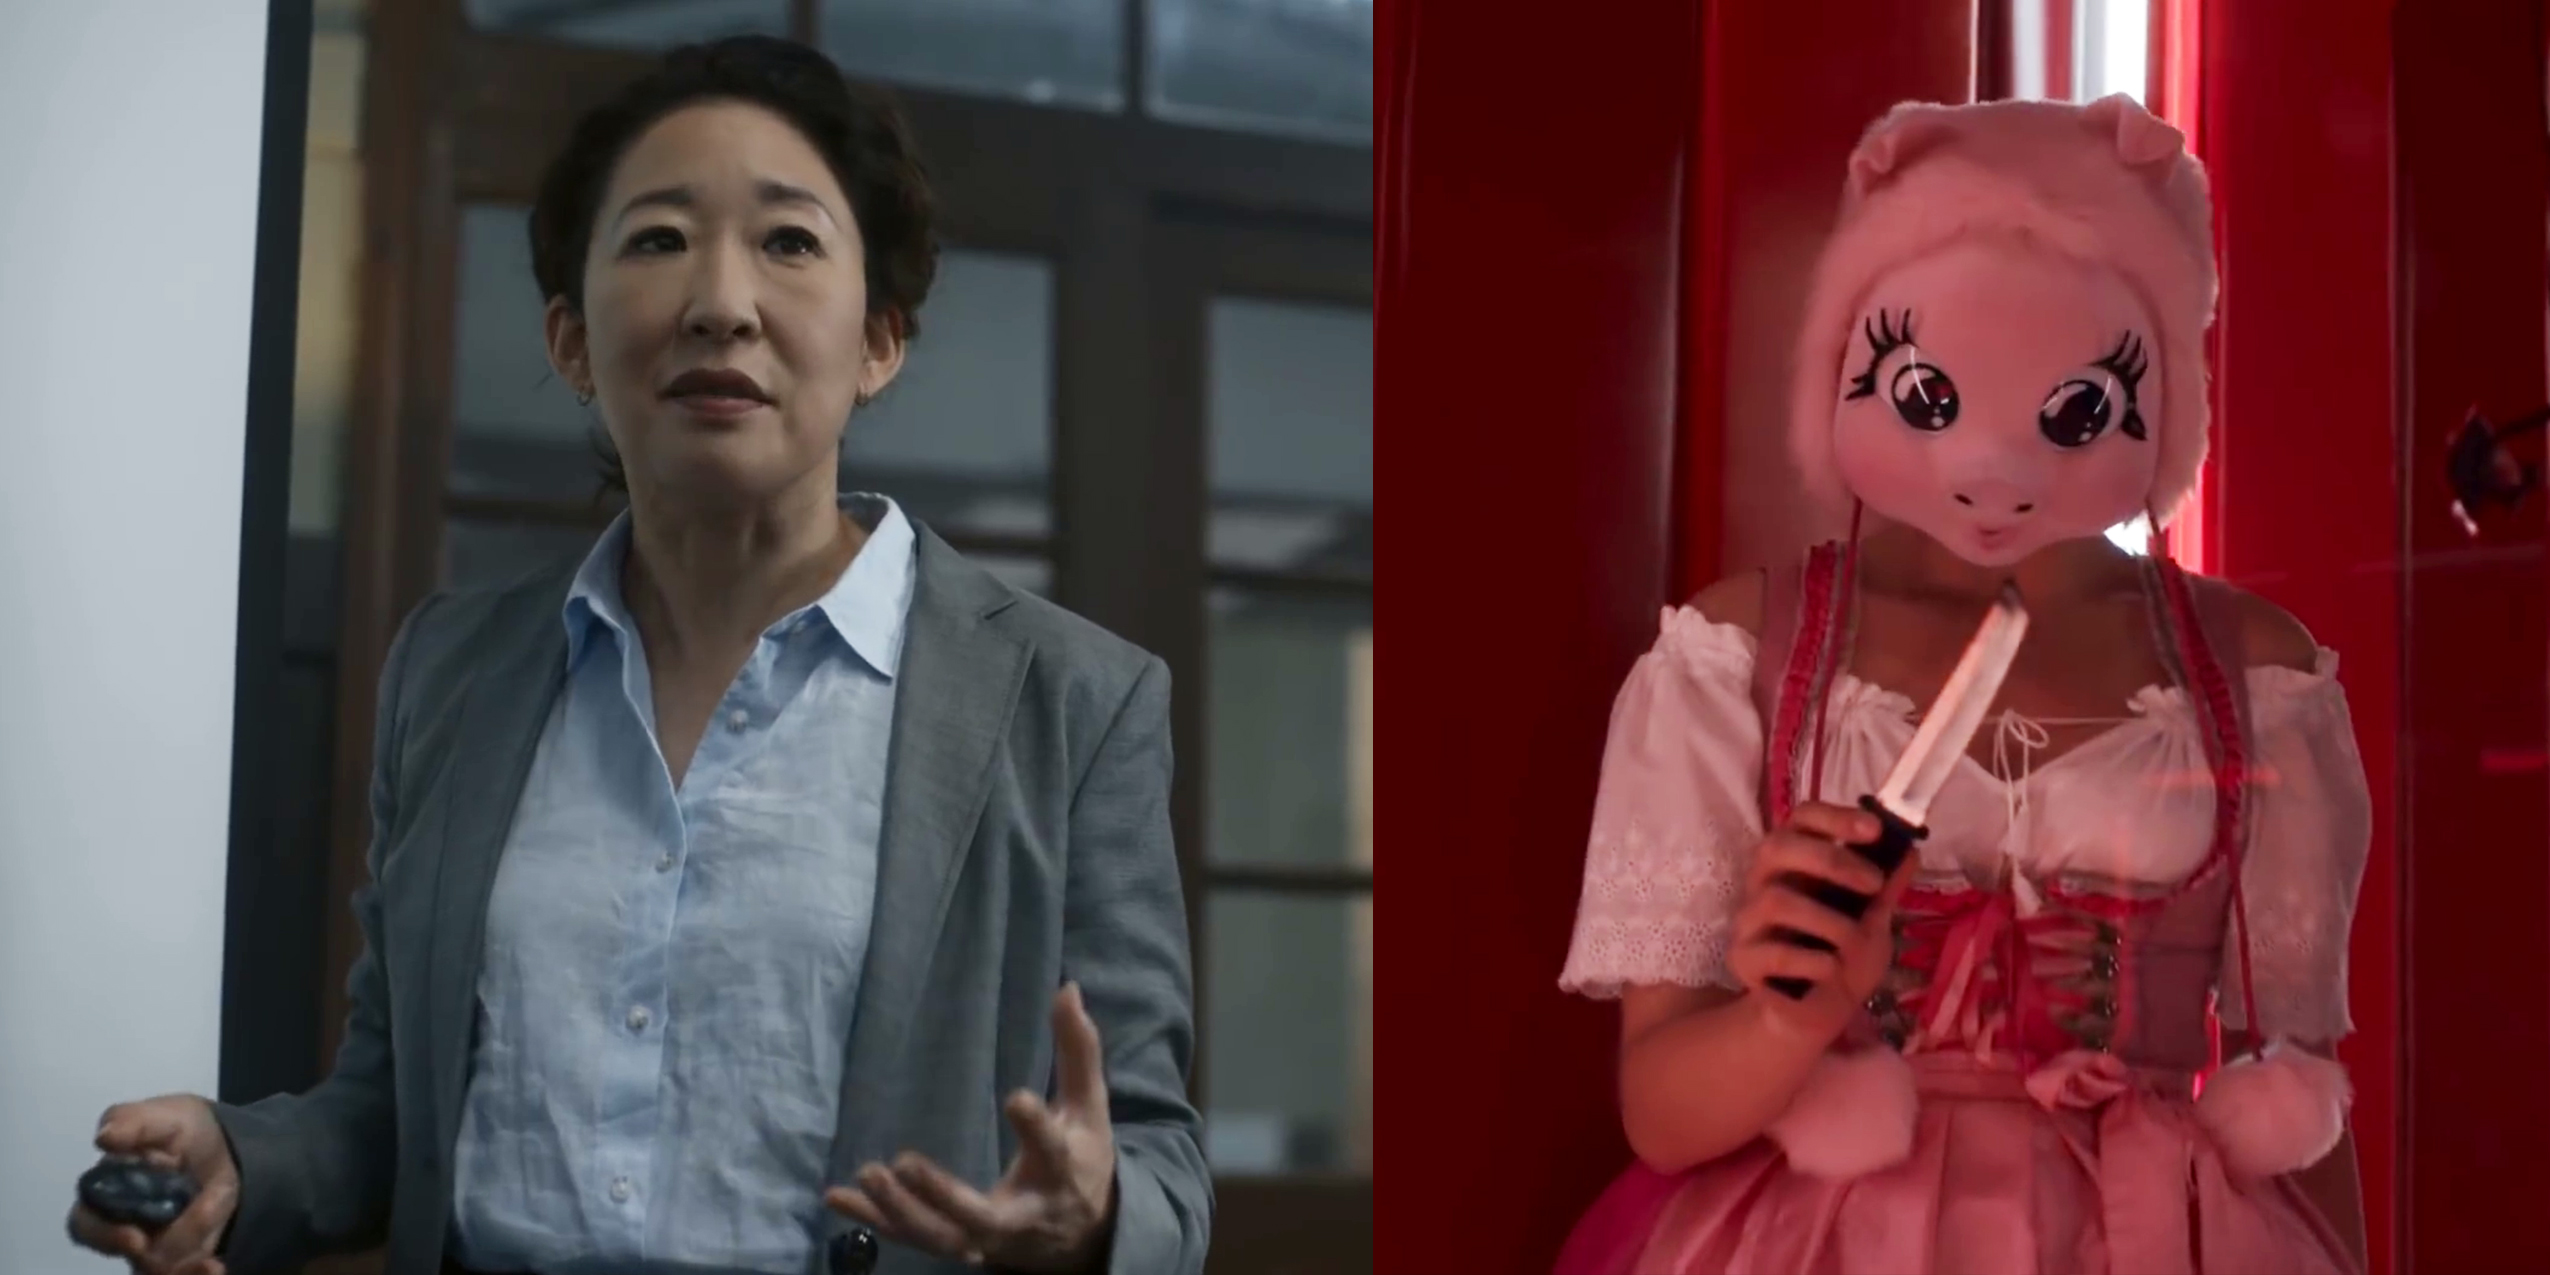 watch  u0026 39 killing eve u0026 39  for free  season 2 and old episodes